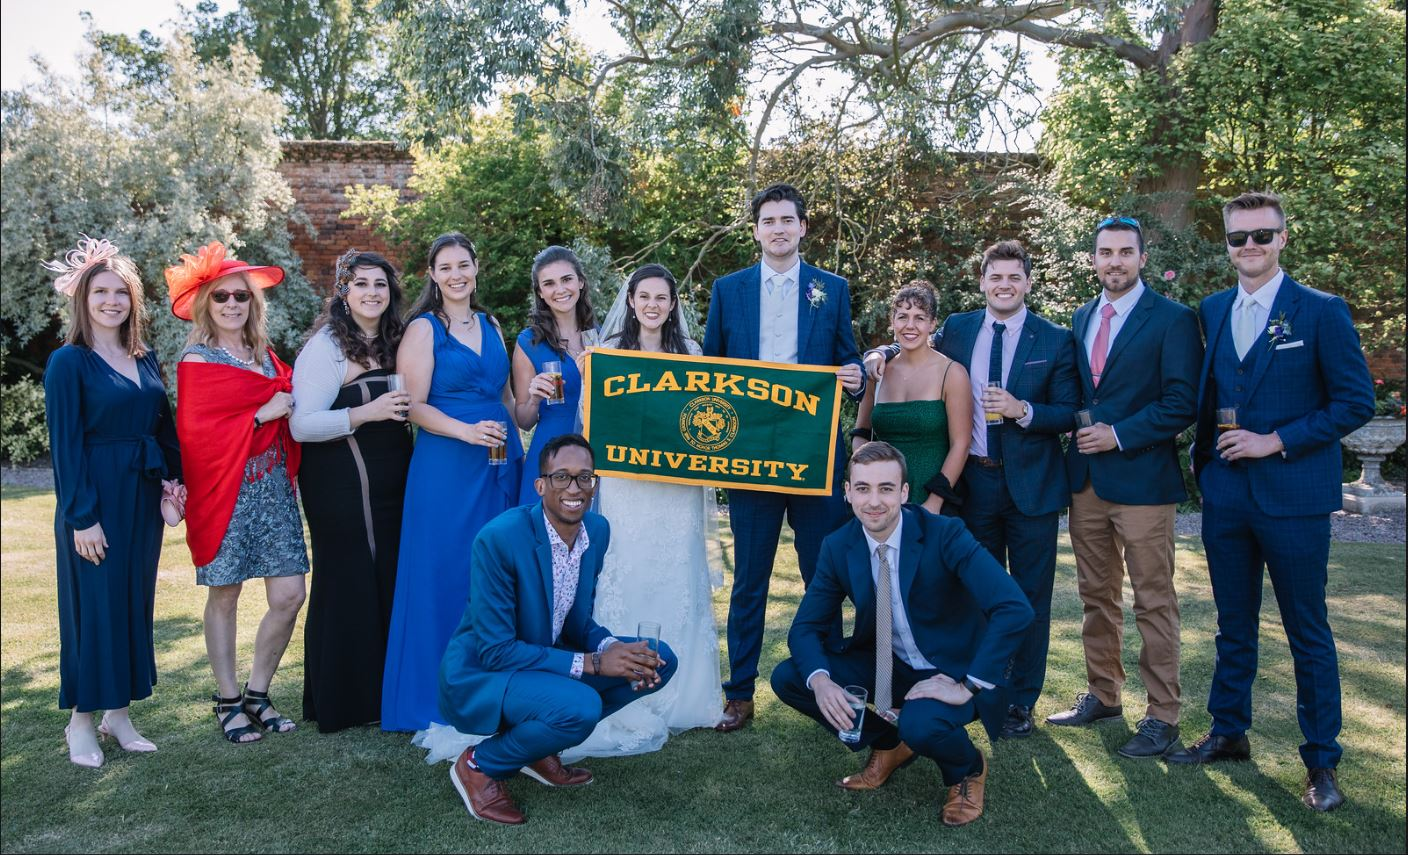 Wedding group photo. Bride and Groom are holding Clarkson University Banner